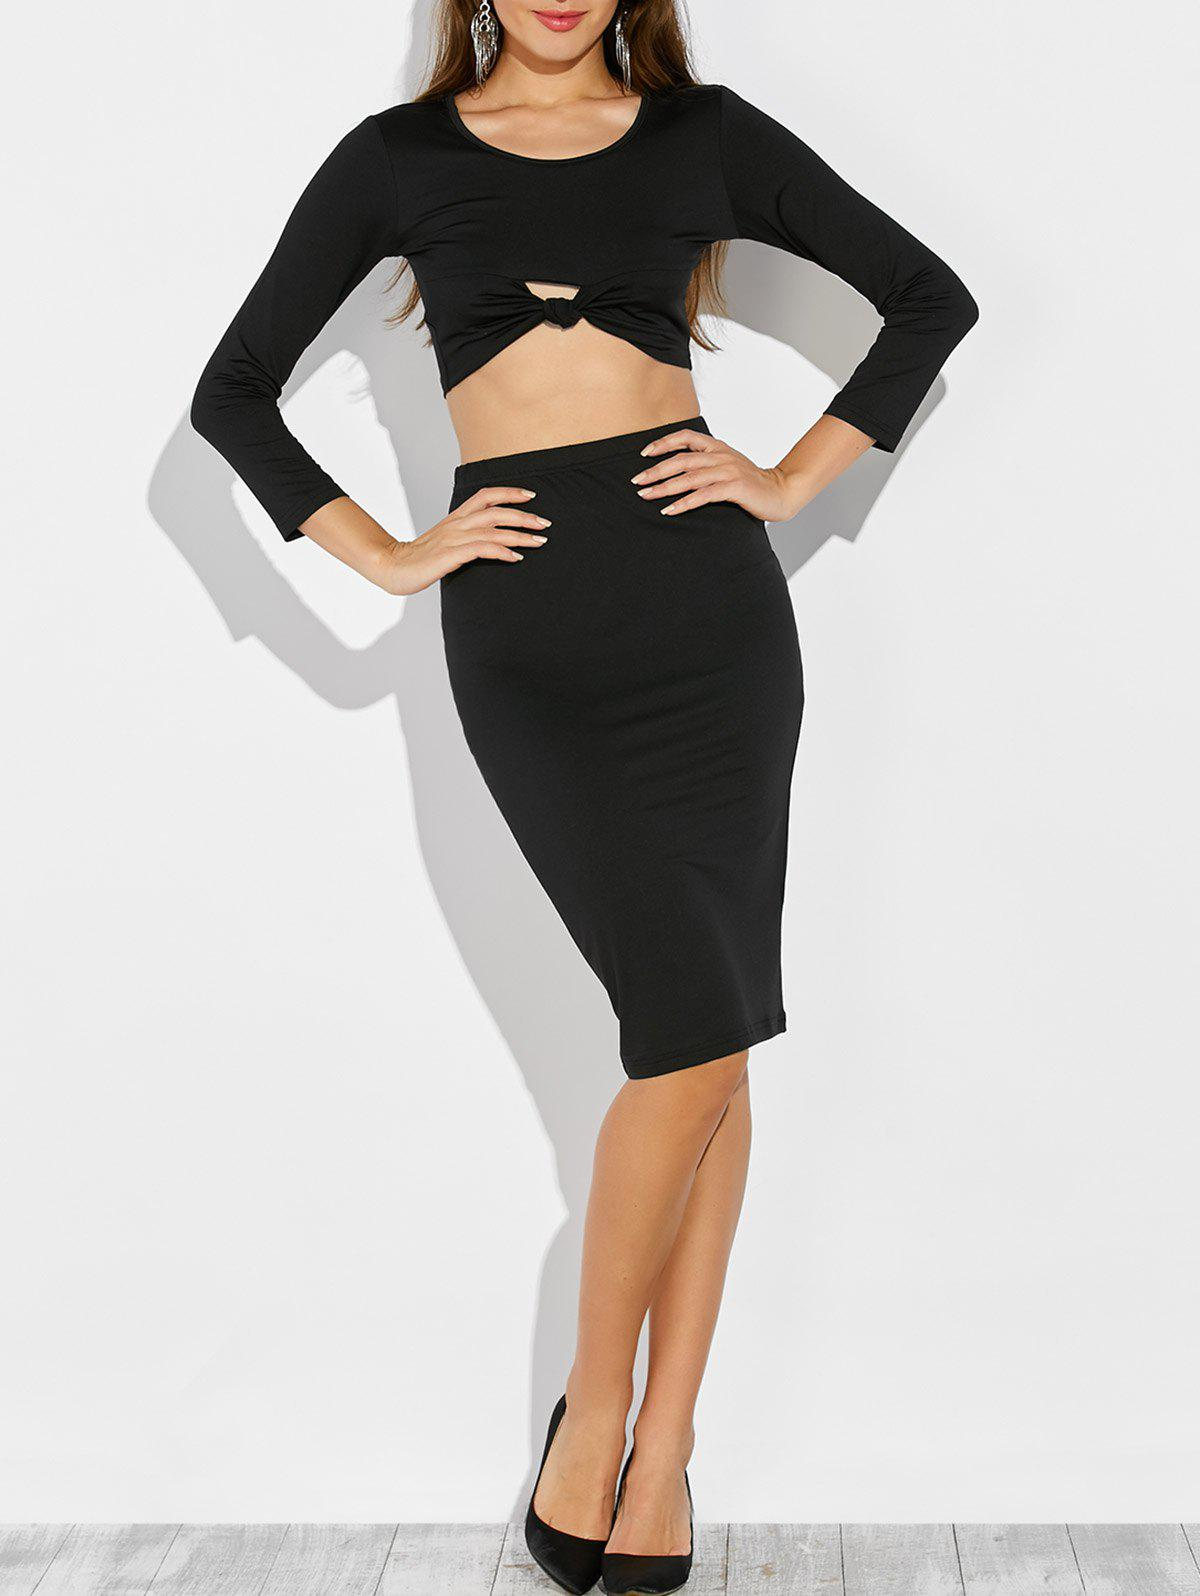 Knotted Cropped Top and Pencil Skirt knotted cropped top and pencil skirt